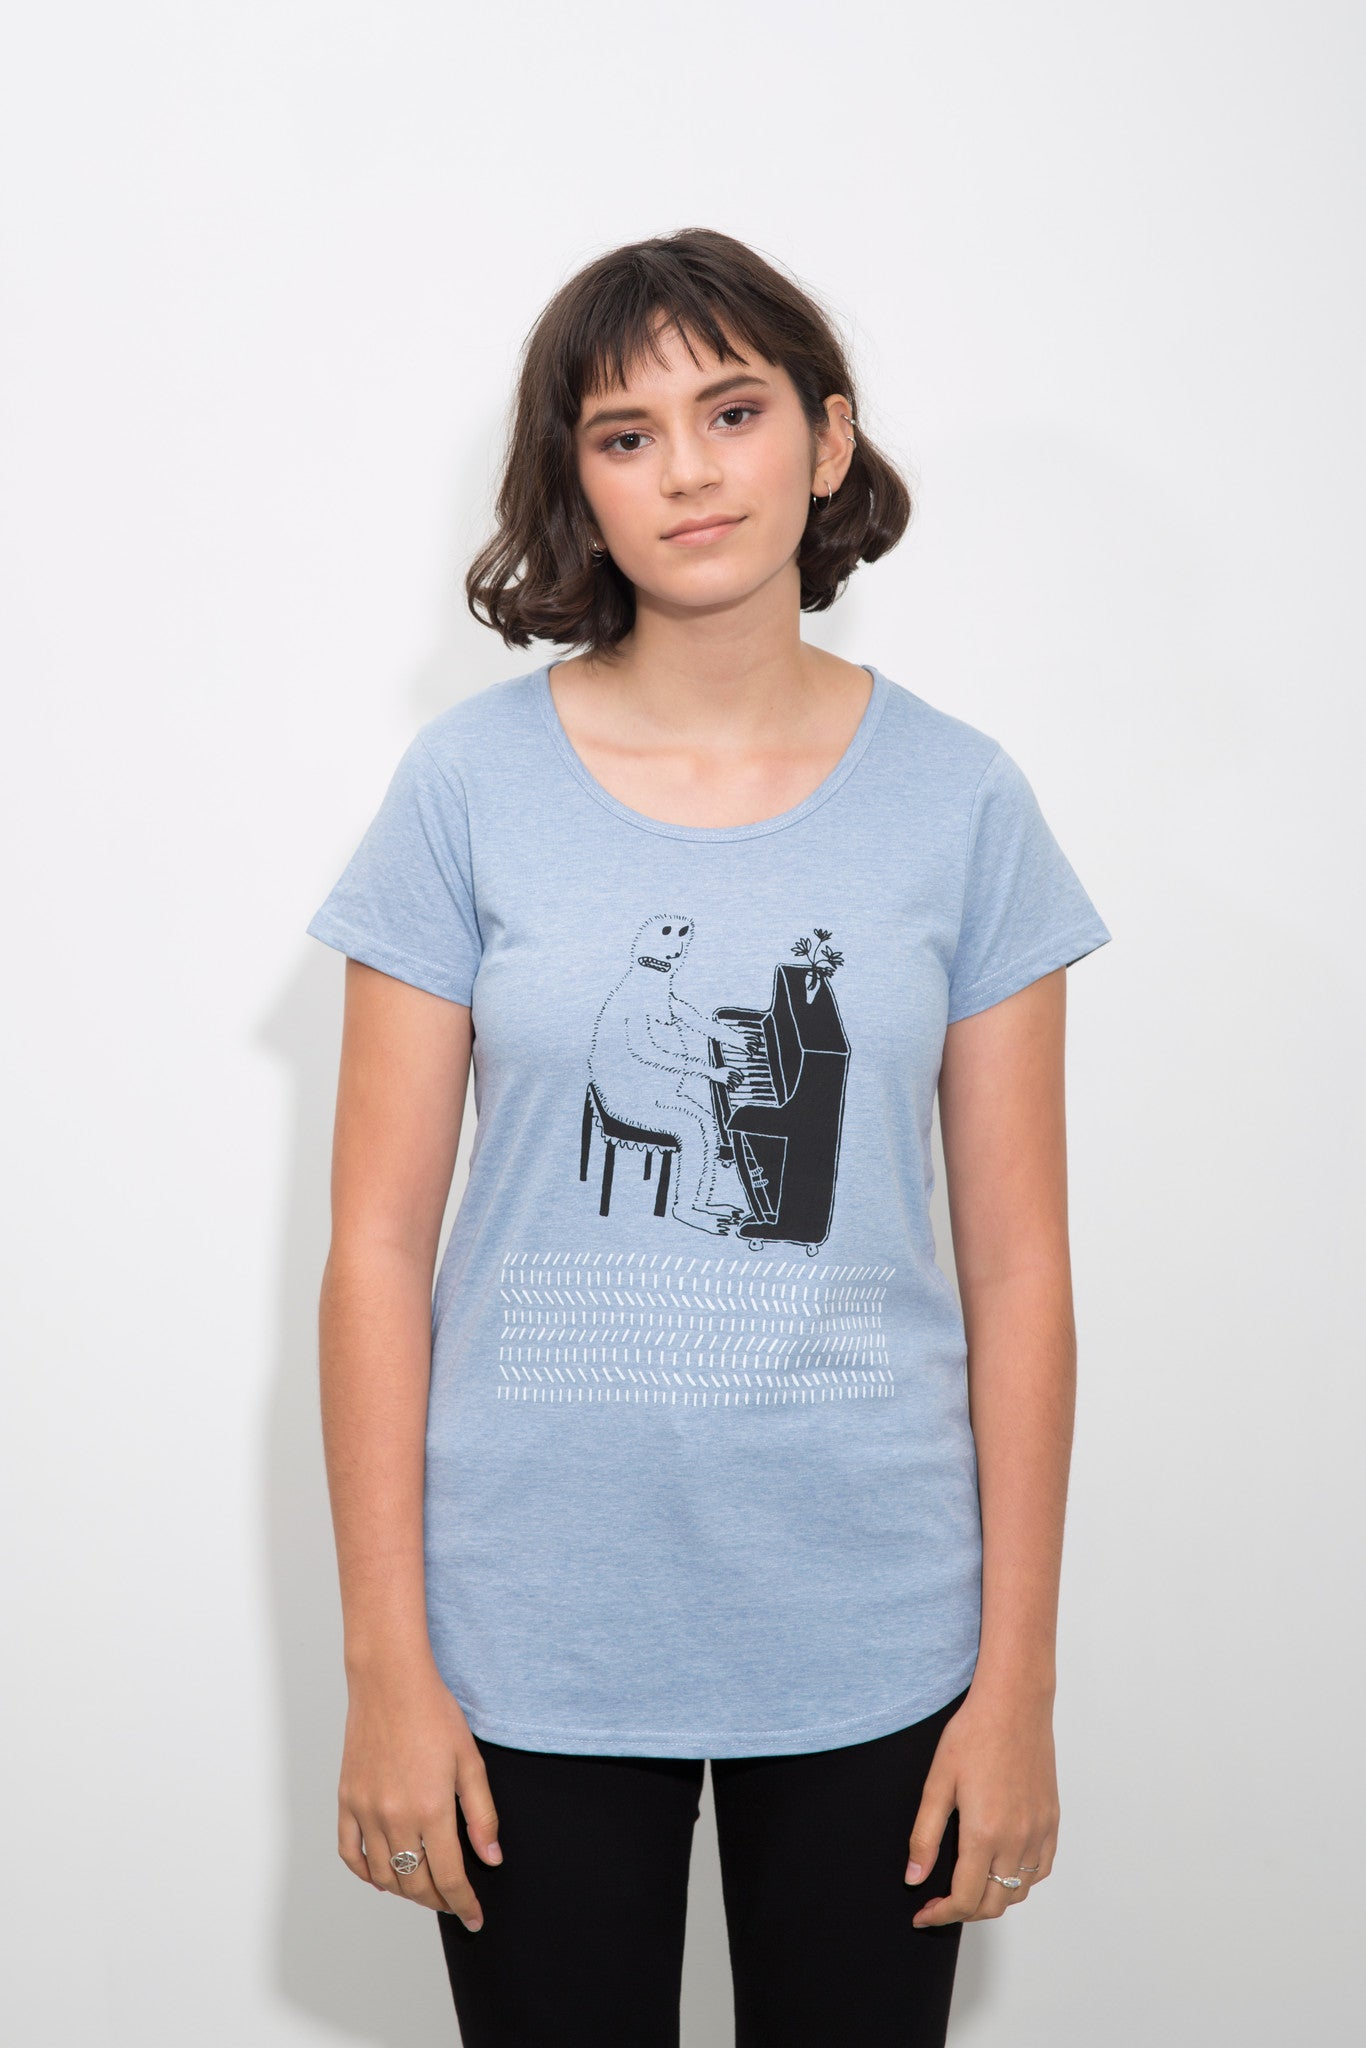 The Yeti's Dilemma Women's Duchess Tee